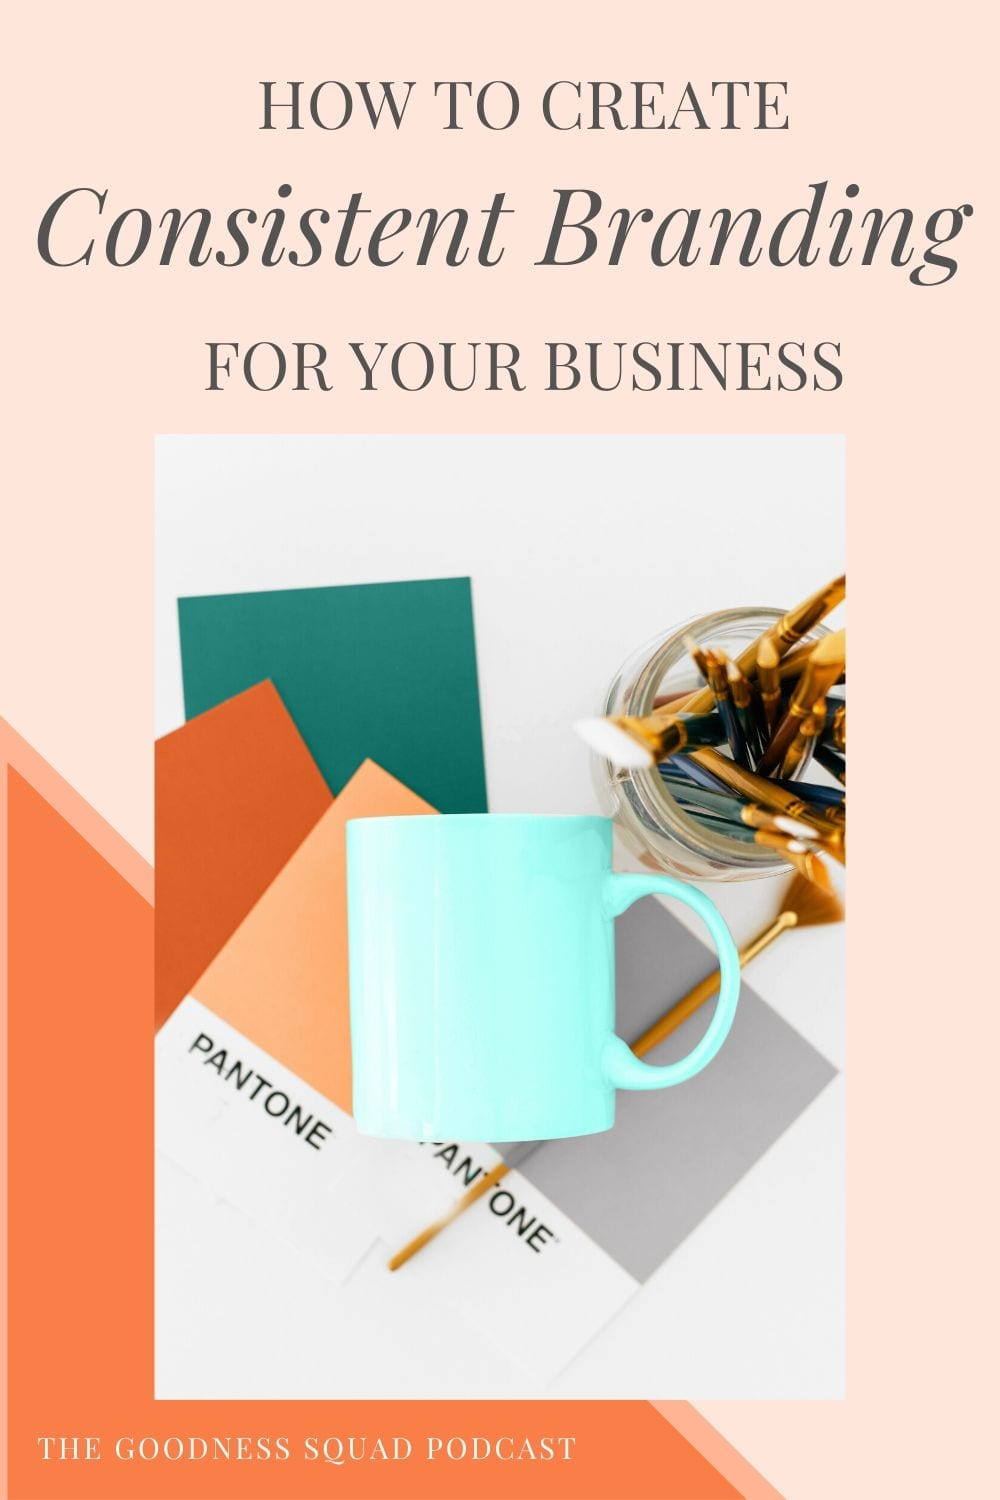 025_How inconsistent branding (aka an identity crisis) can hinder business growth